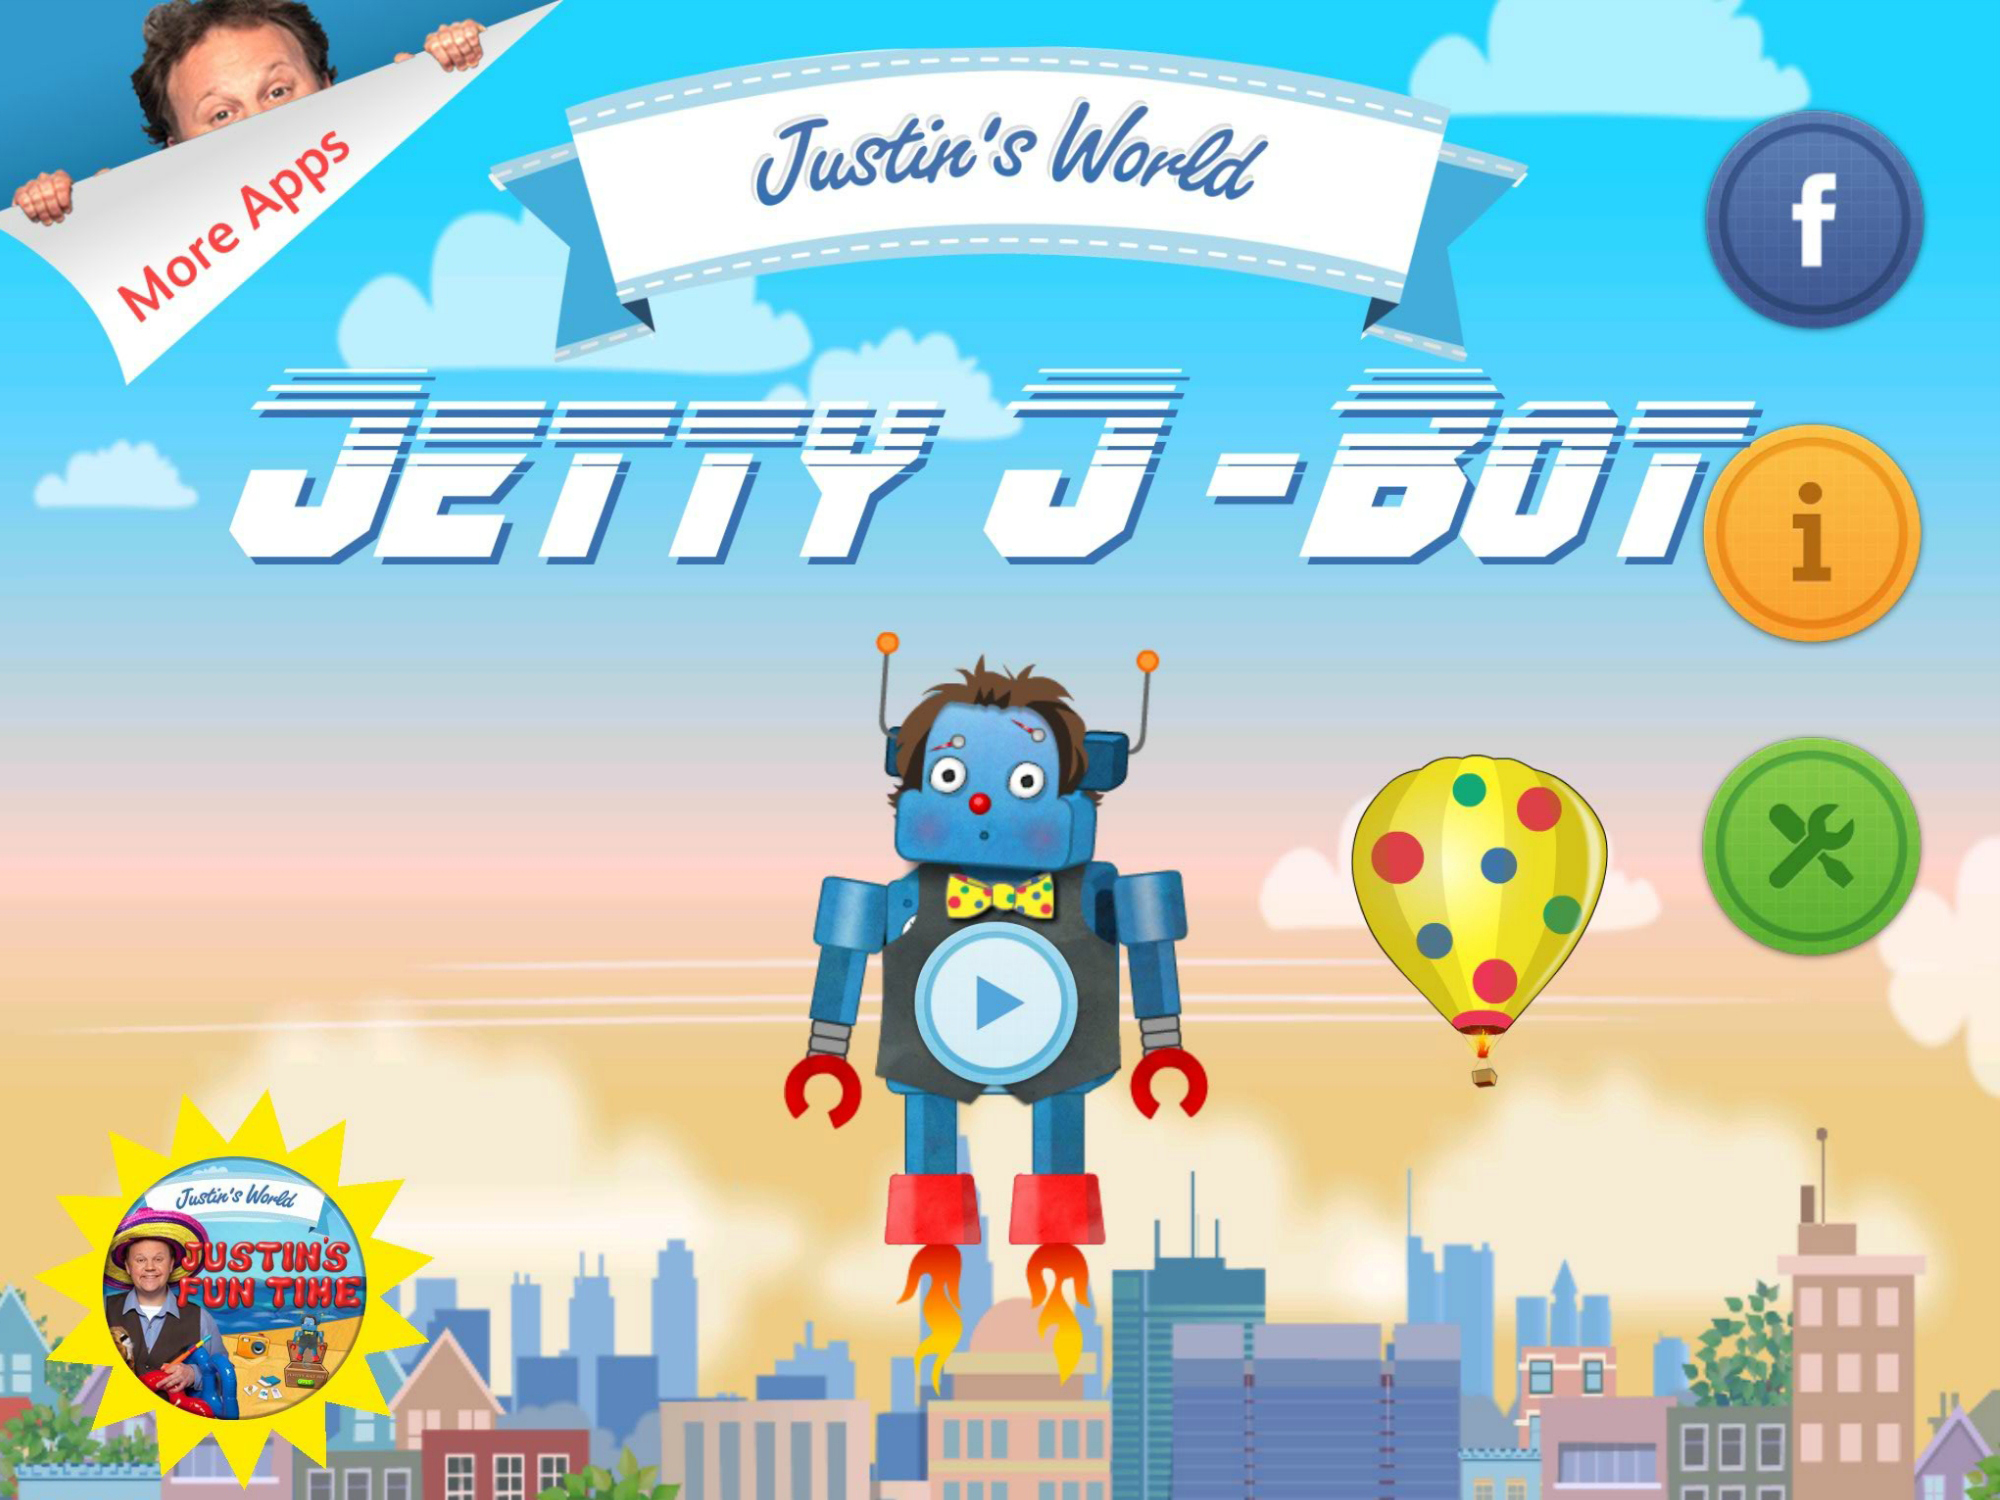 Jetty J-Bot - app illustration